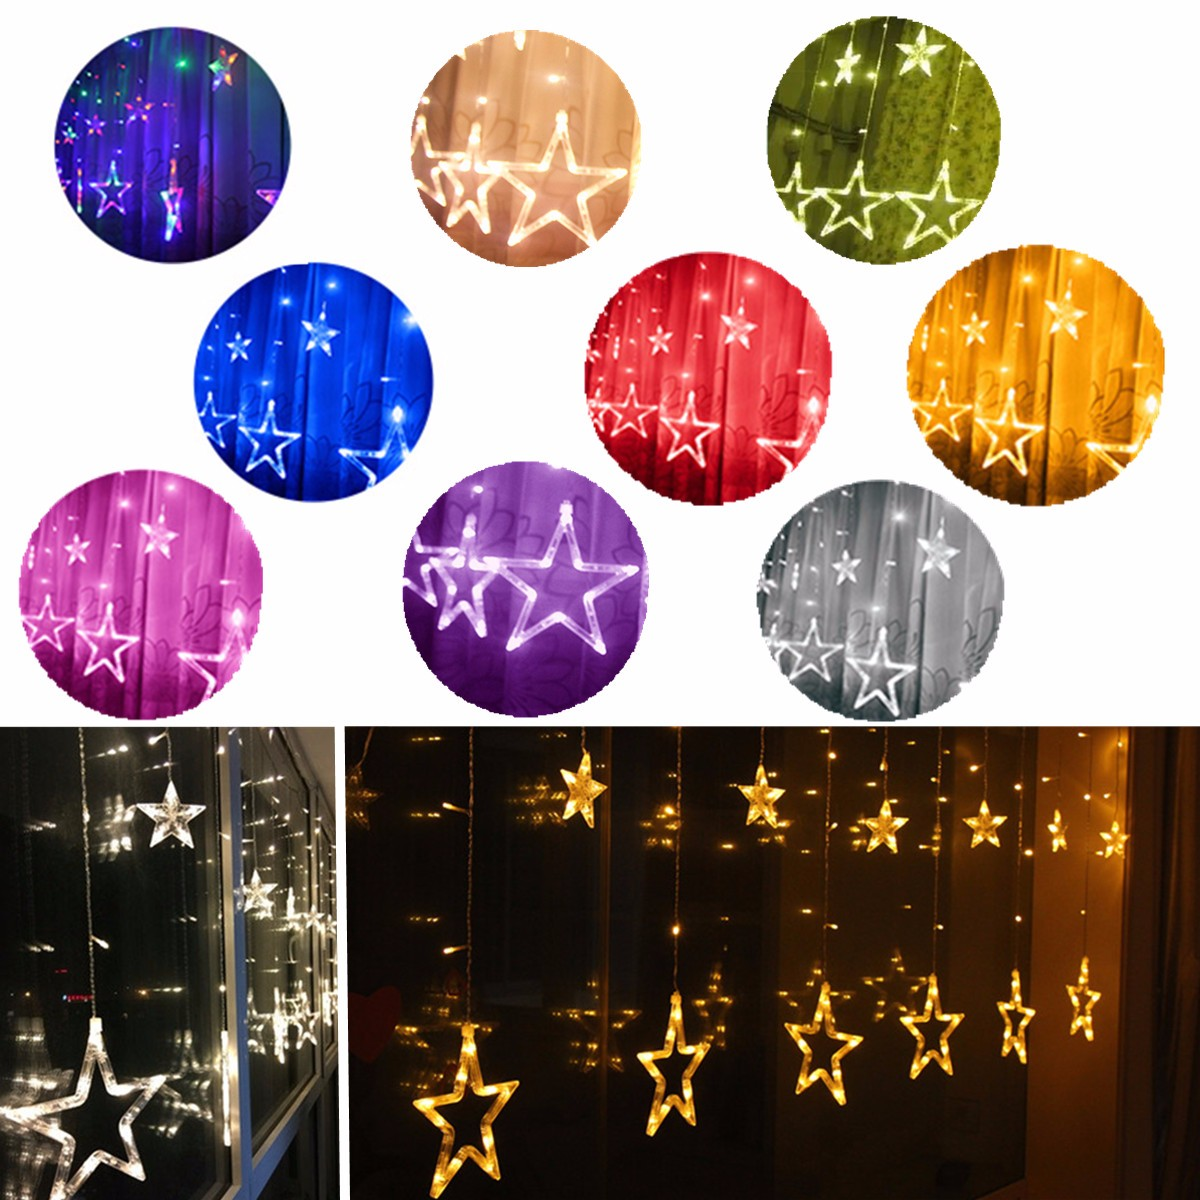 2019 Latest Design 2.5m Battery Powered Star Fairy Led String Curtain Waterfall Light Lamp Christmas Wedding Party Home Decor Lighting Lights Products Hot Sale